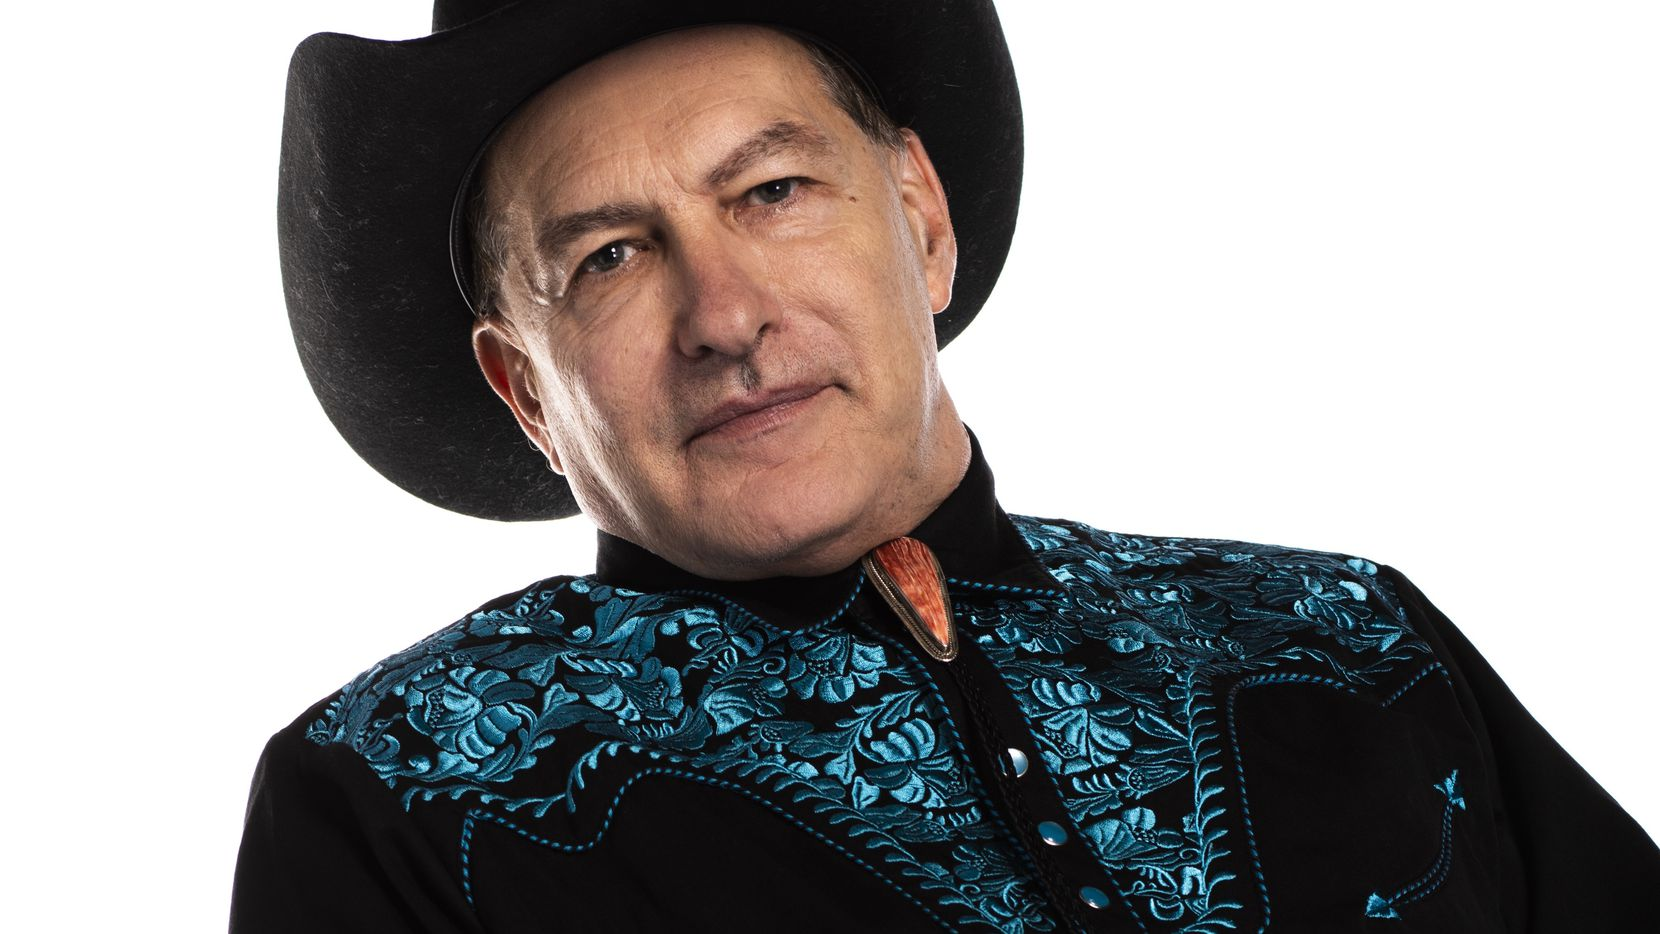 John Bloom, a.k.a. Joe Bob Briggs, revealed in a recent interview that he had COVID-19 in May, a detail he chose to keep private at the time.